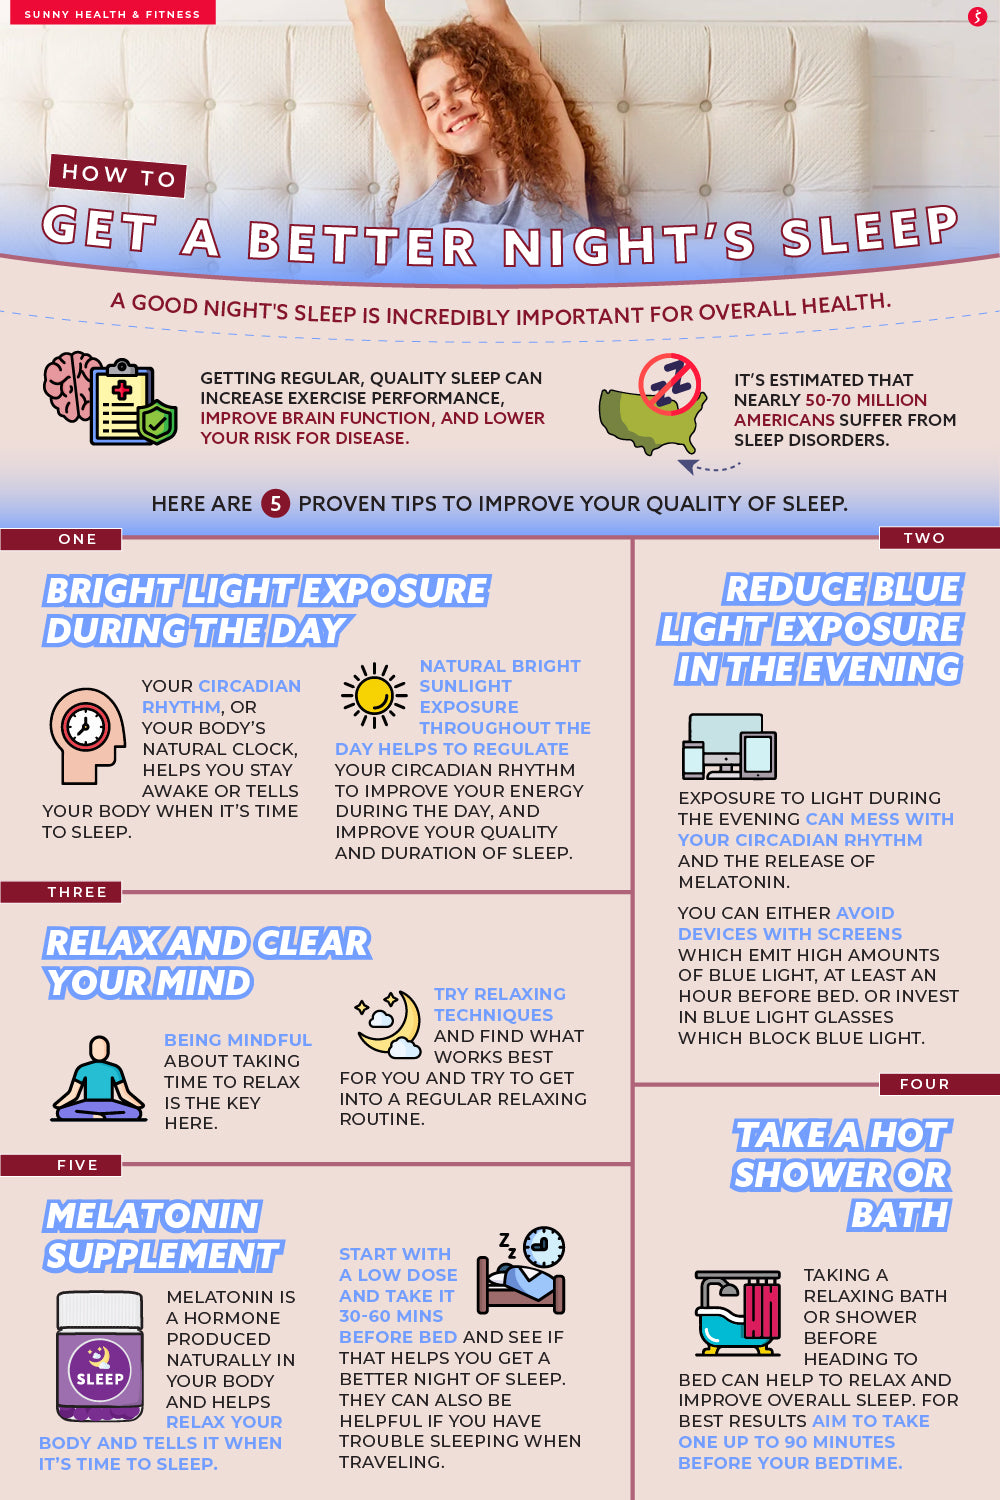 How to Get a Better Night's Sleep Infographic